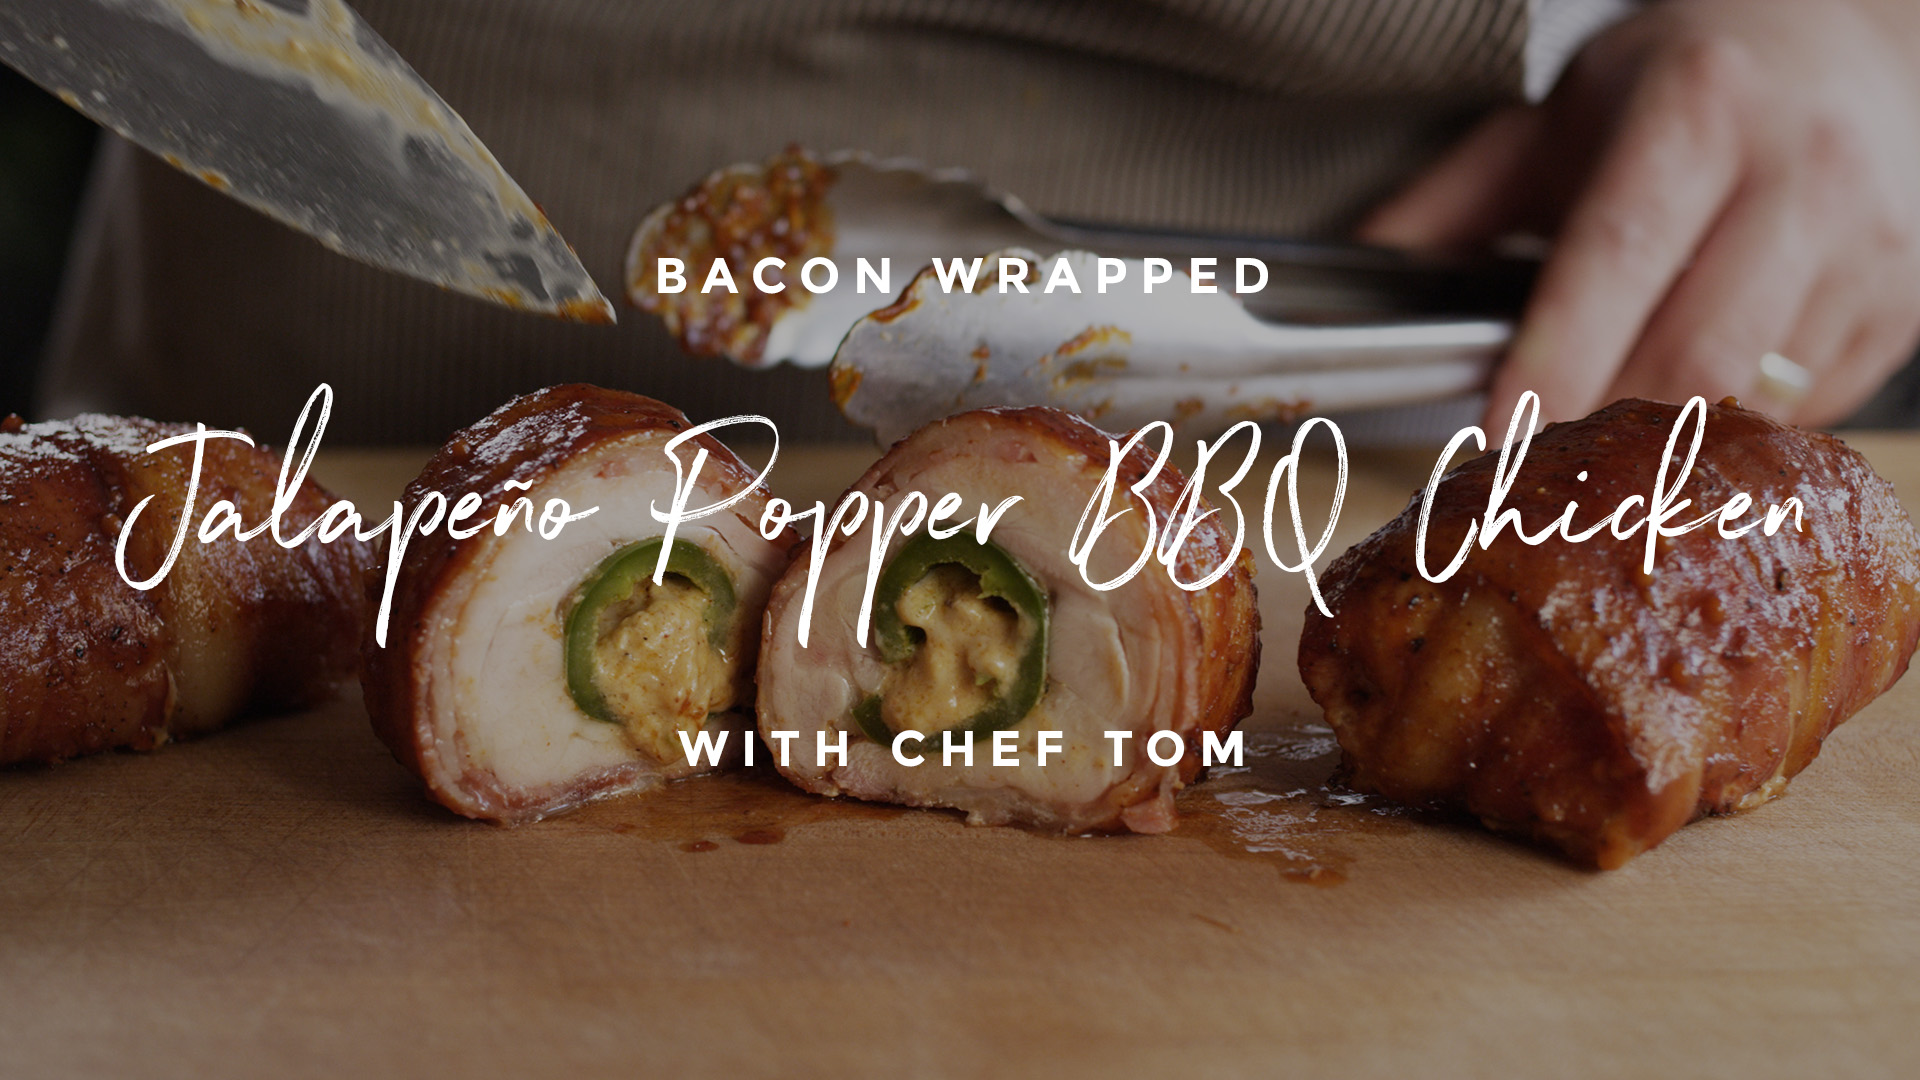 Bacon Wrapped Jalapeño Popper Stuffed Barbecue Chicken Recipe